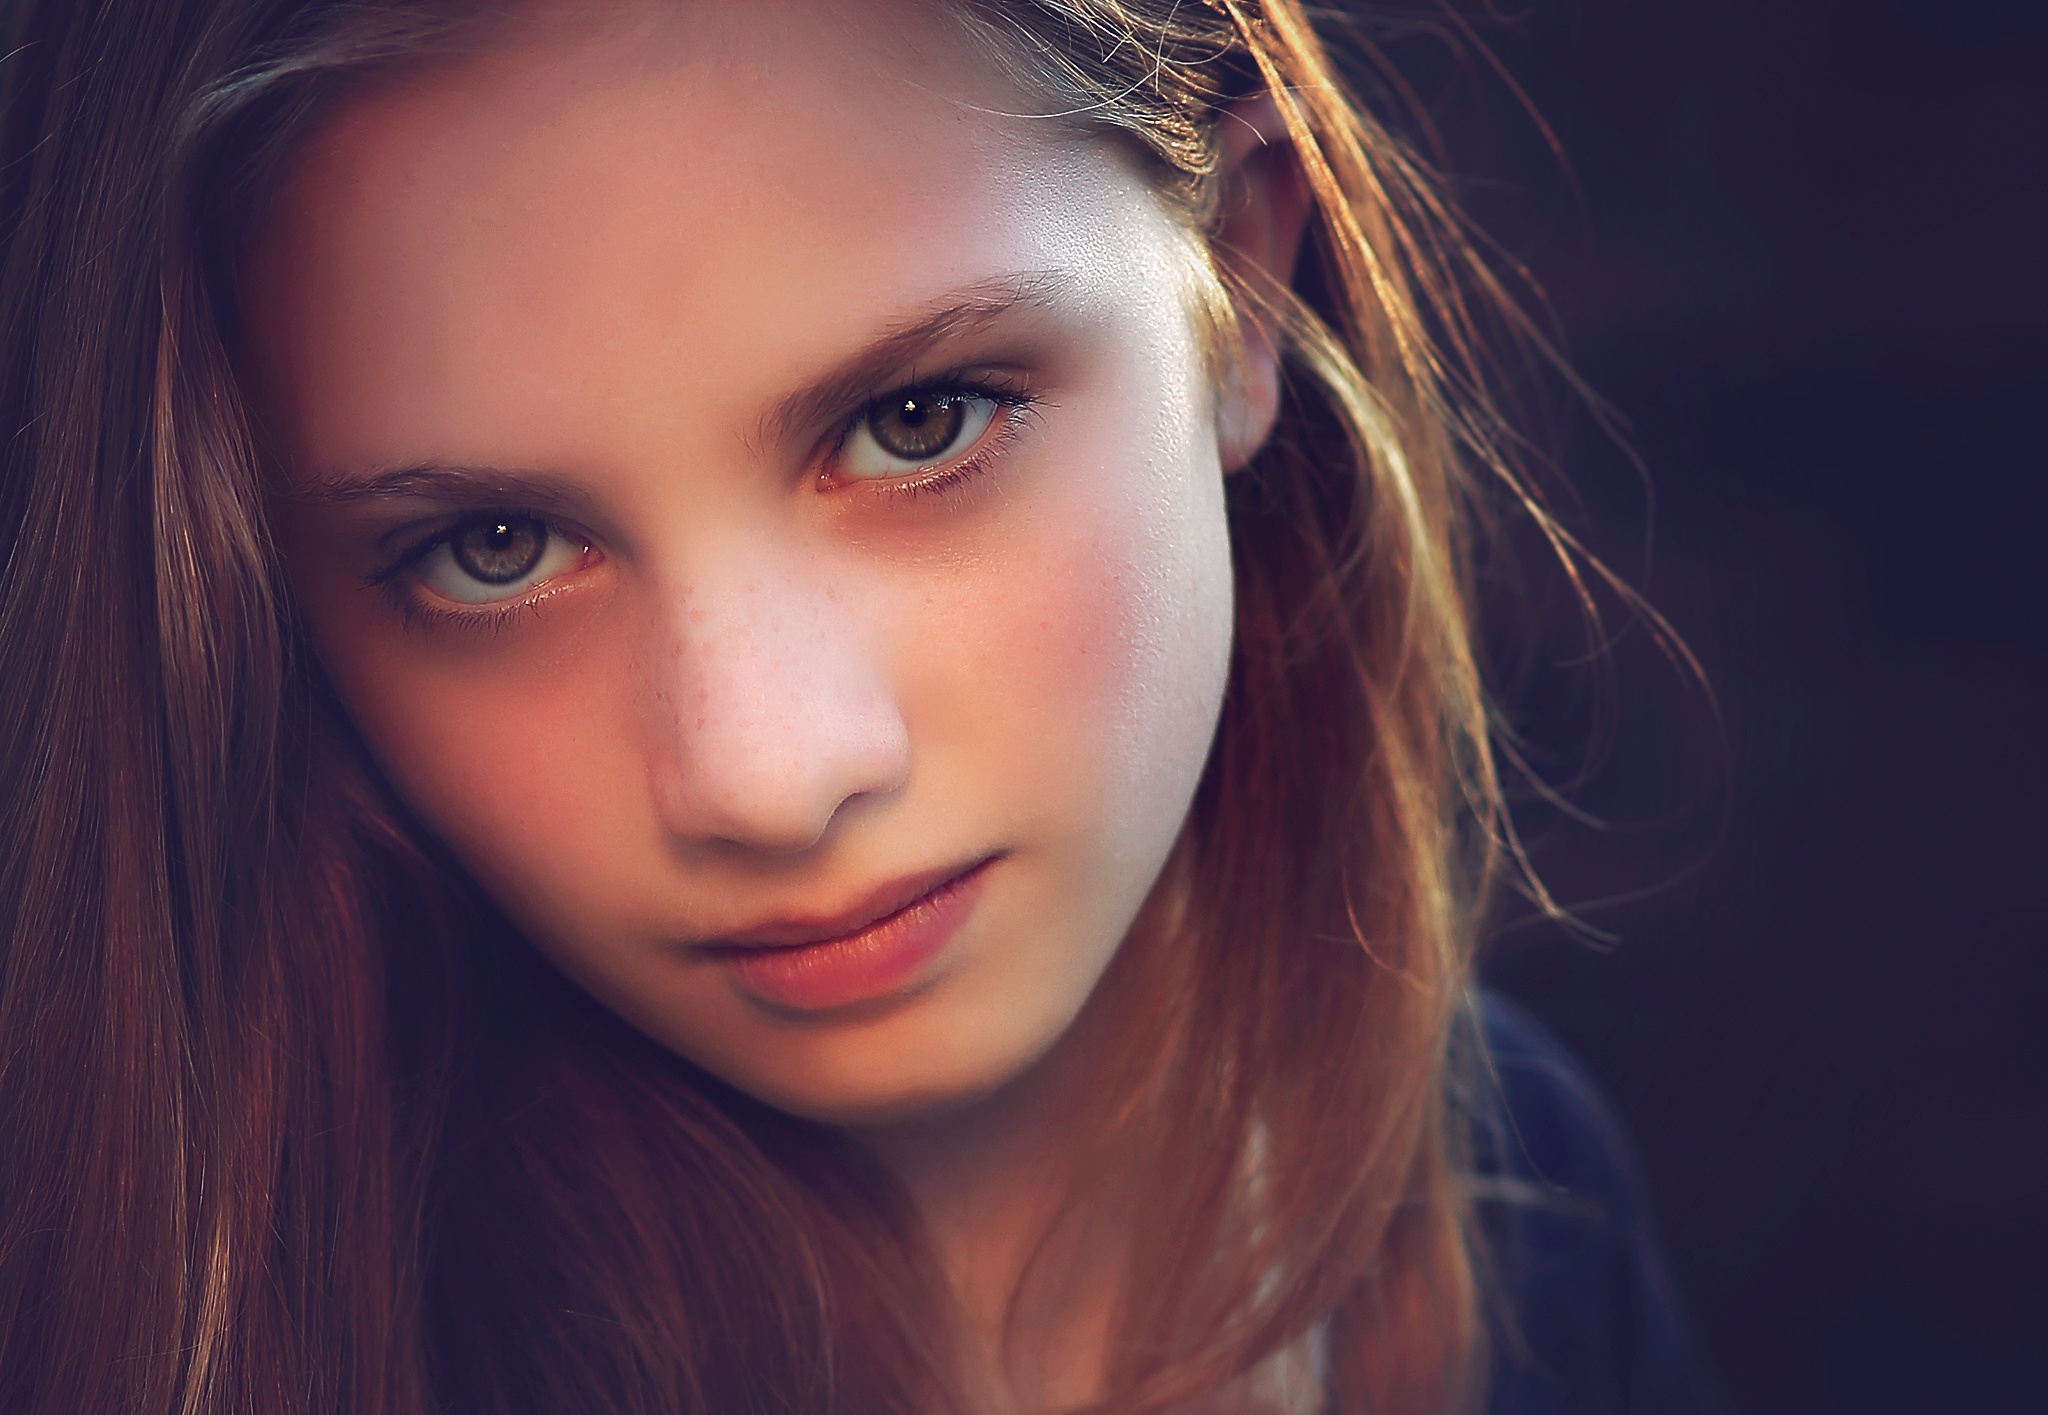 Annelies by Bas Oude Reimer